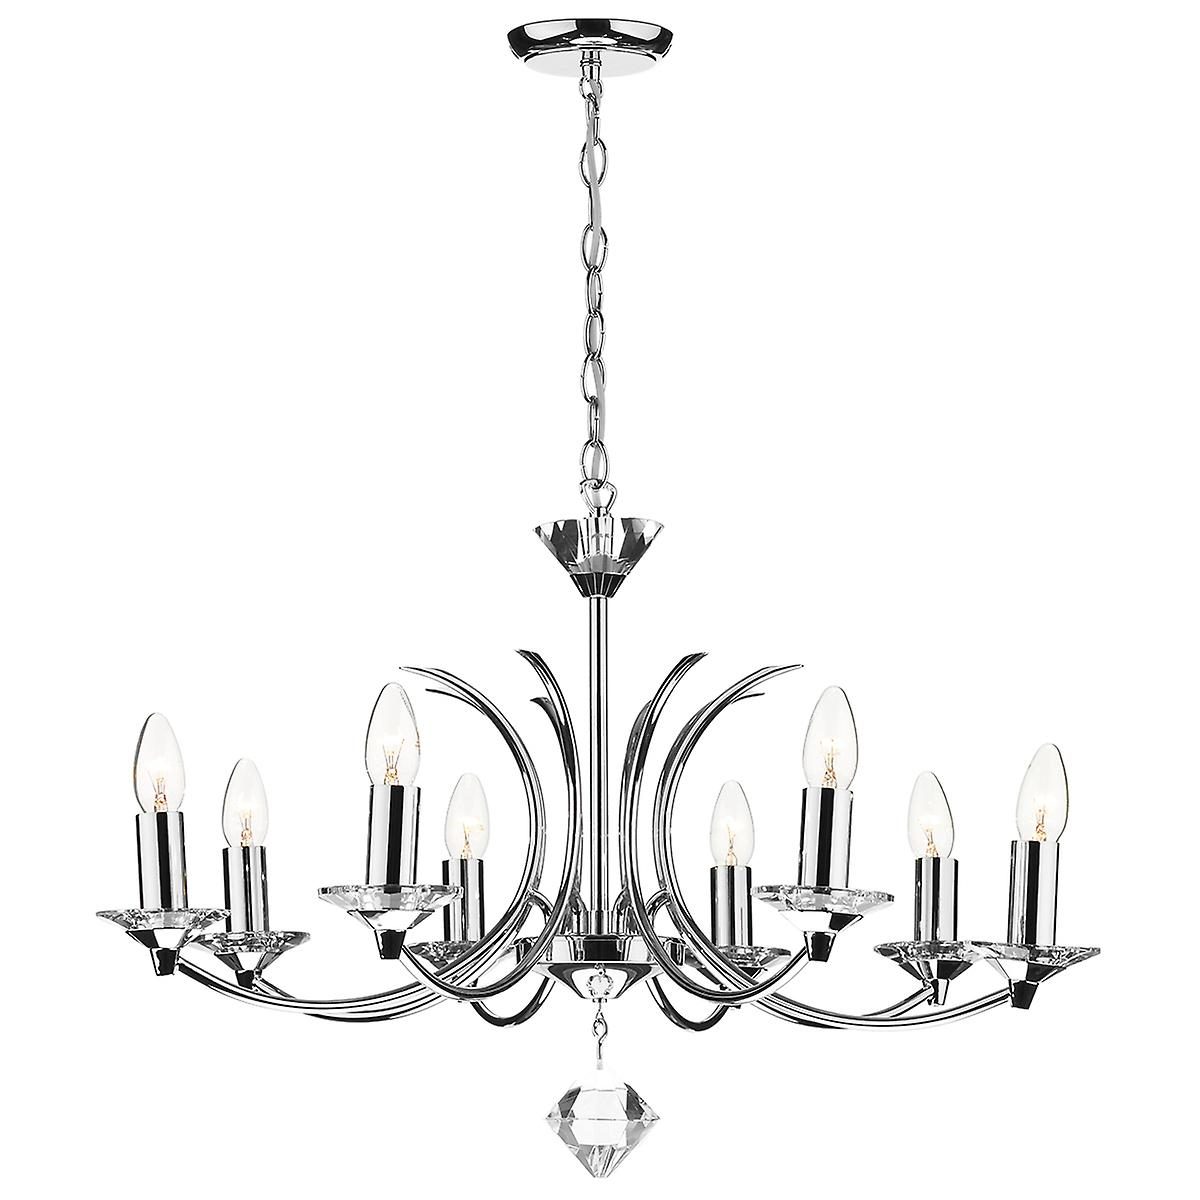 Dar MED0850 Medusa 8 Arm Ceiling Pendant With Crystal - Dual Mount